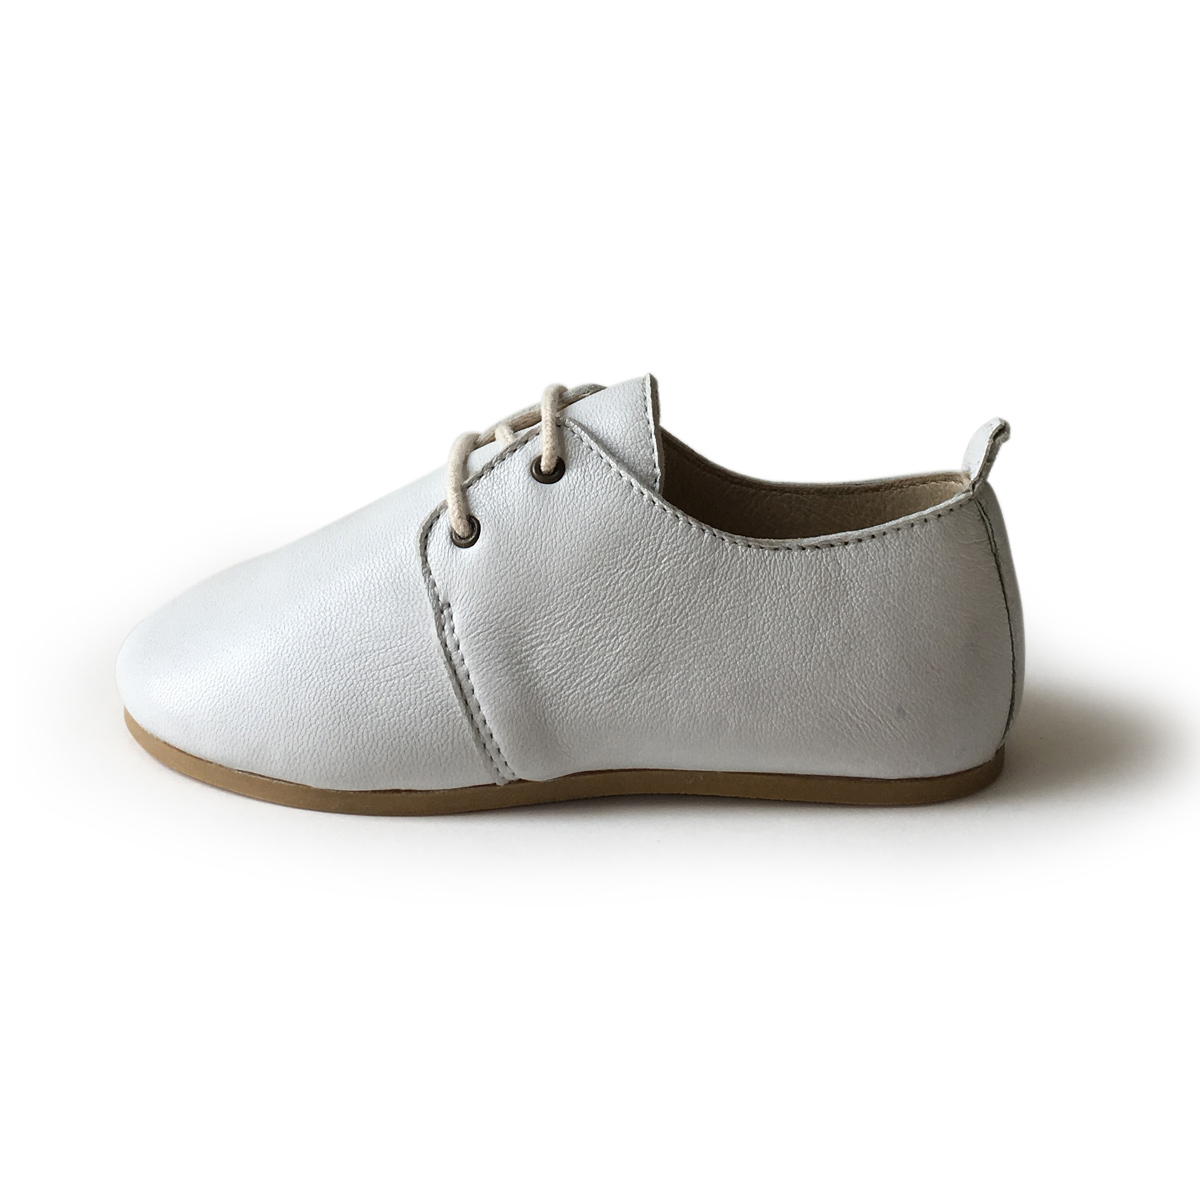 Chaussons & Chaussures Petit Paris Trend Blanc - Taille 24 Hippie Ya - AR201707100043